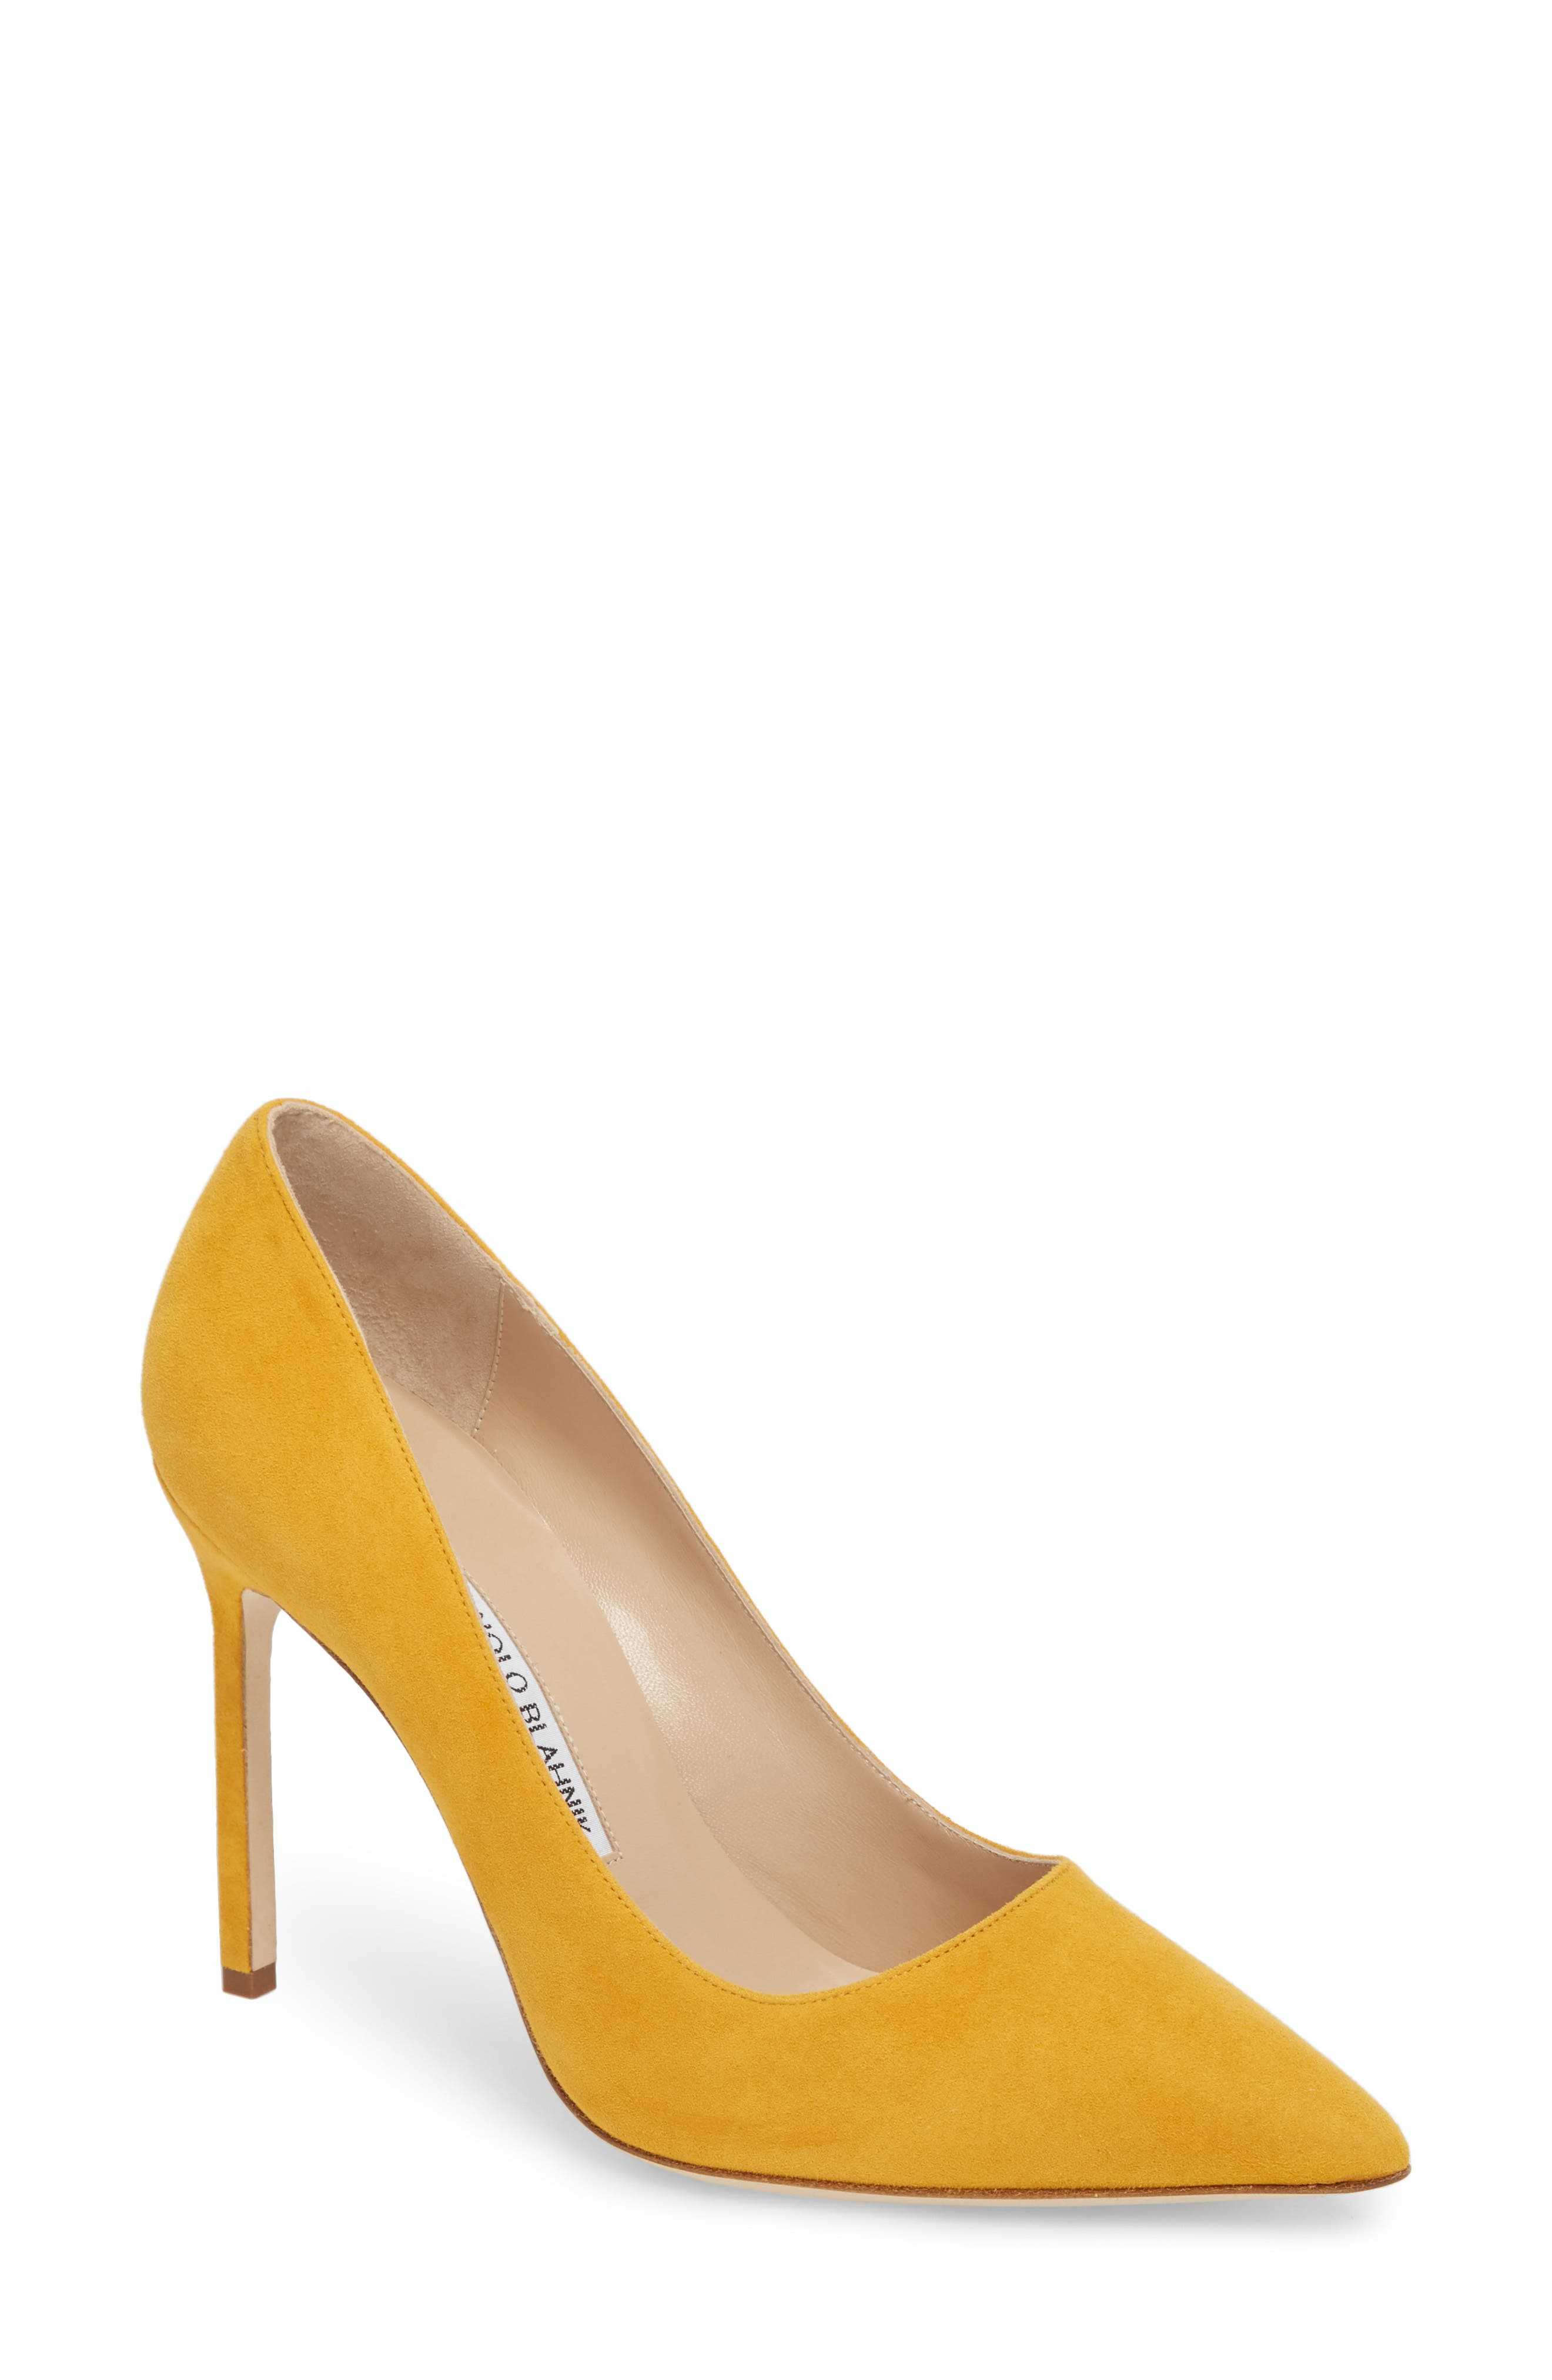 'BB' Pointy Toe Pump,                         Main,                         color, Arbor Yellow